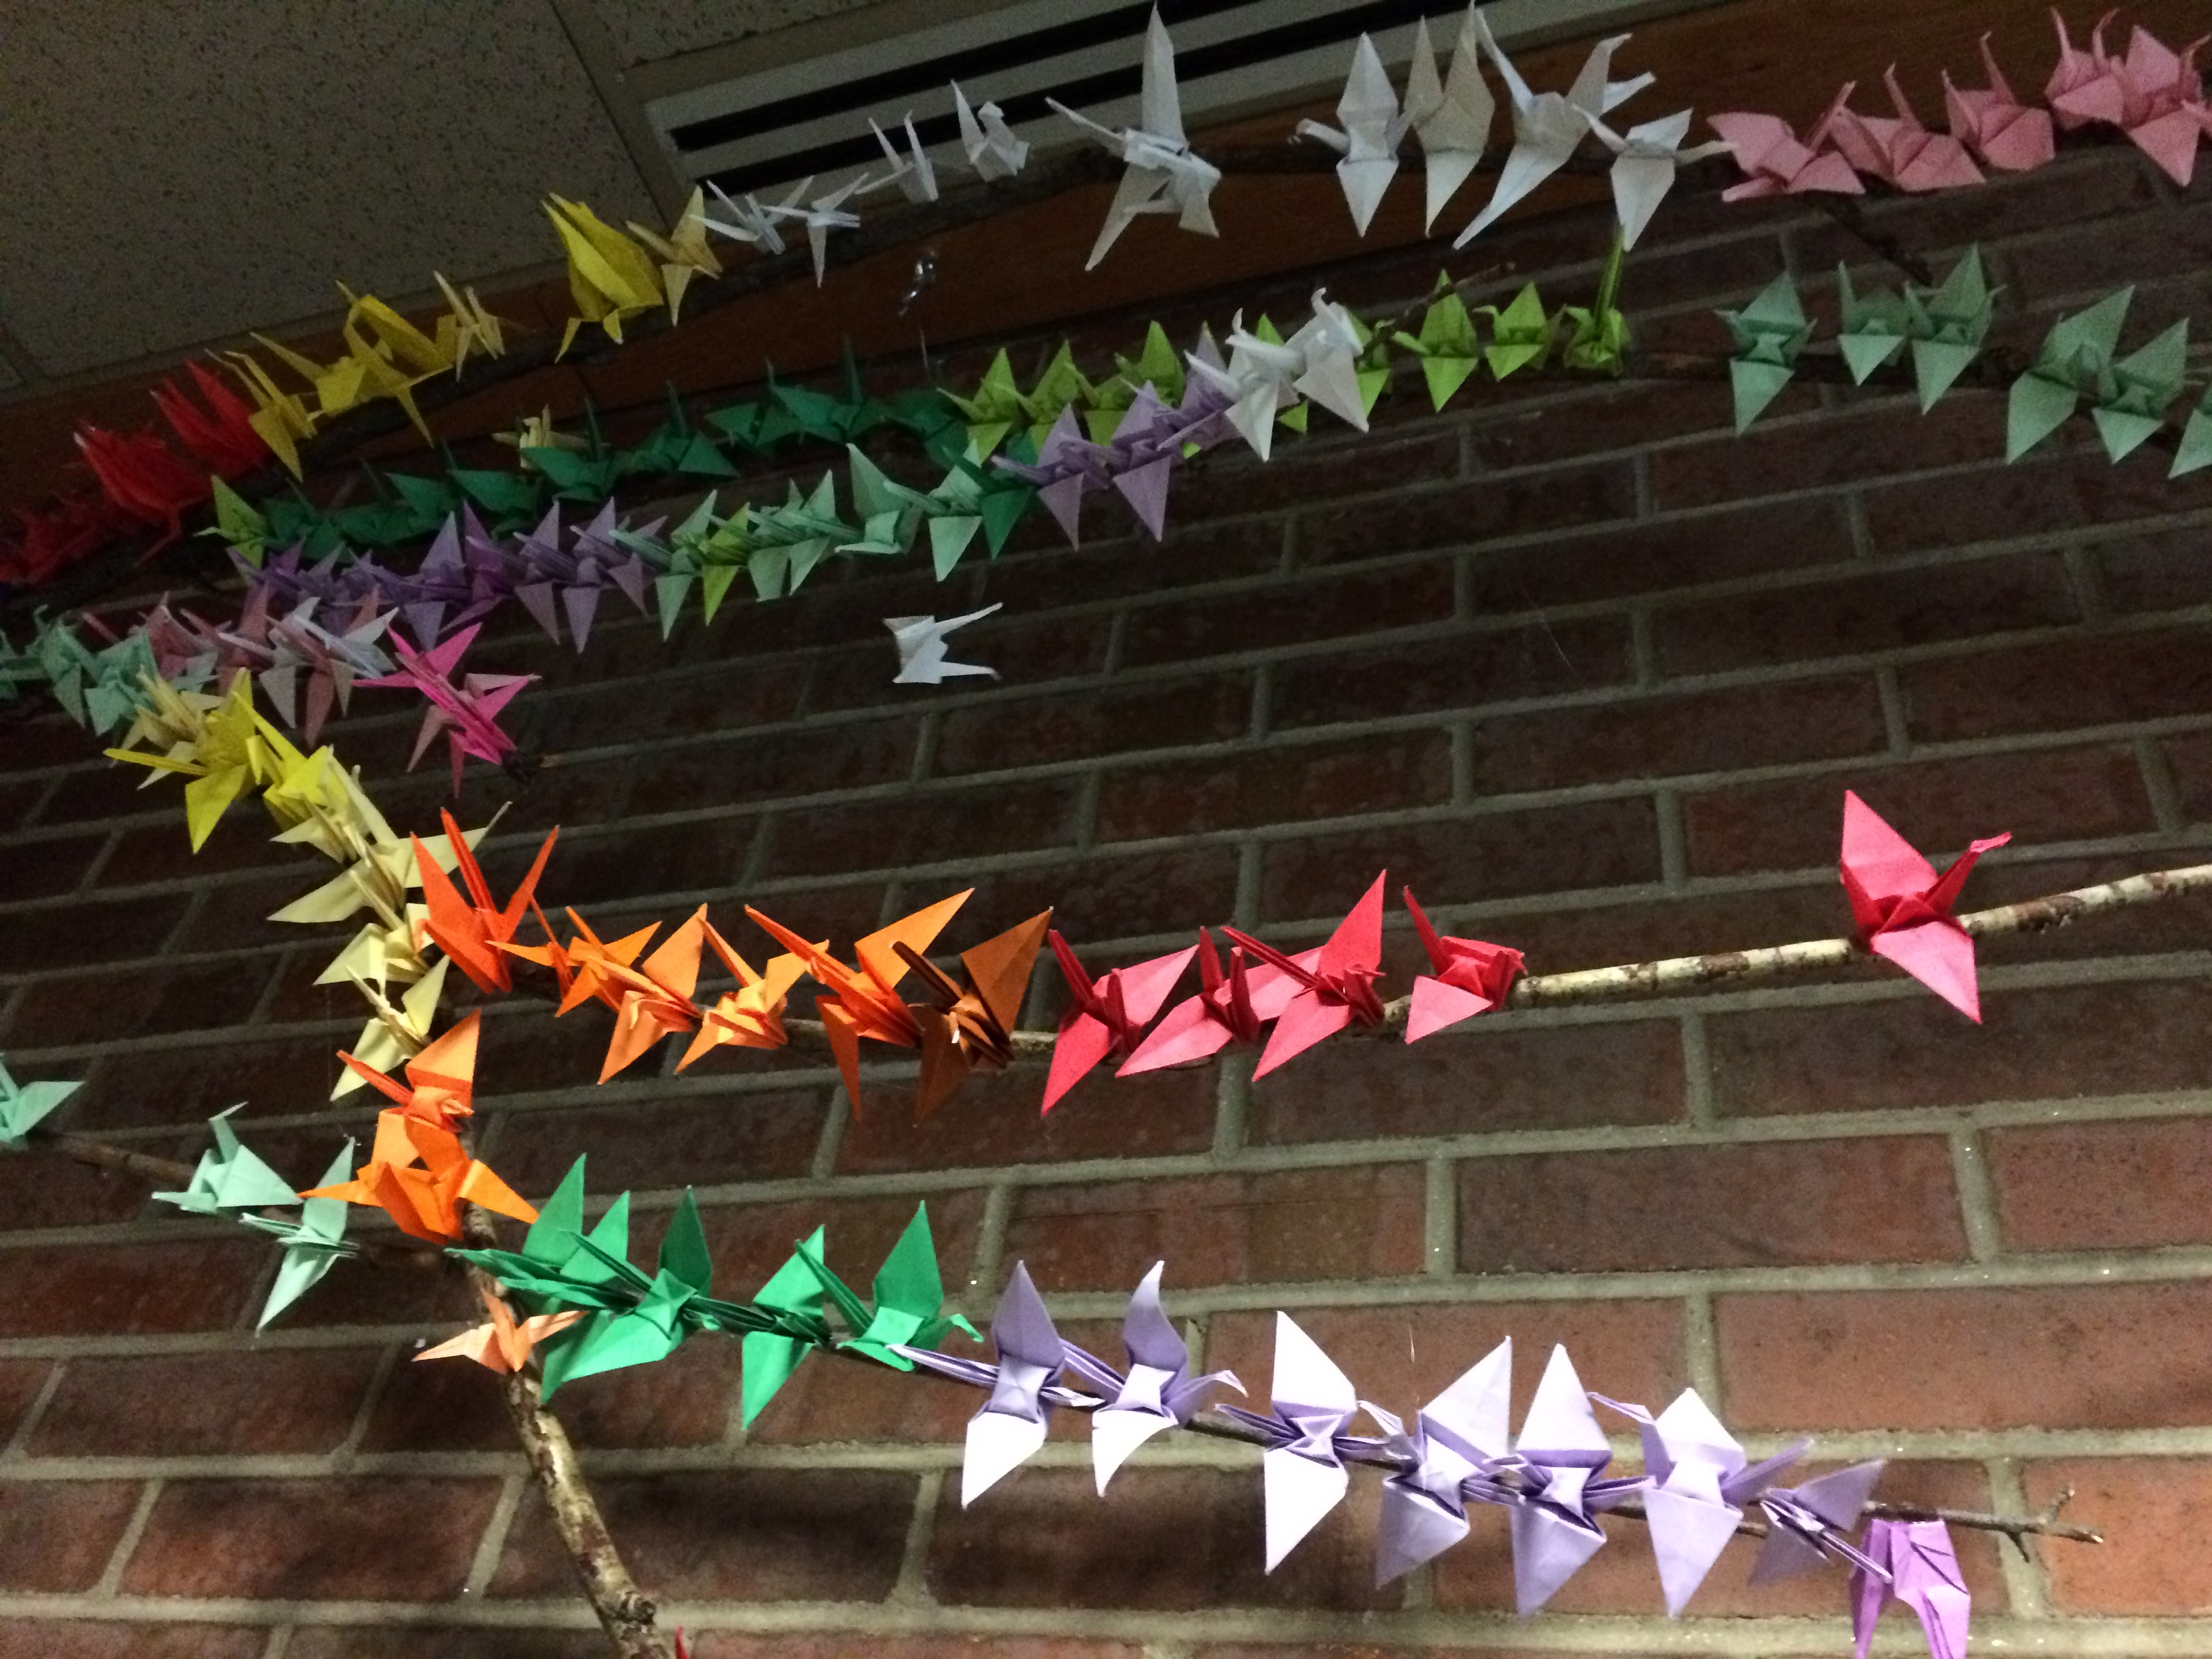 Photo of colorful paper cranes affixed to an aspen branch.